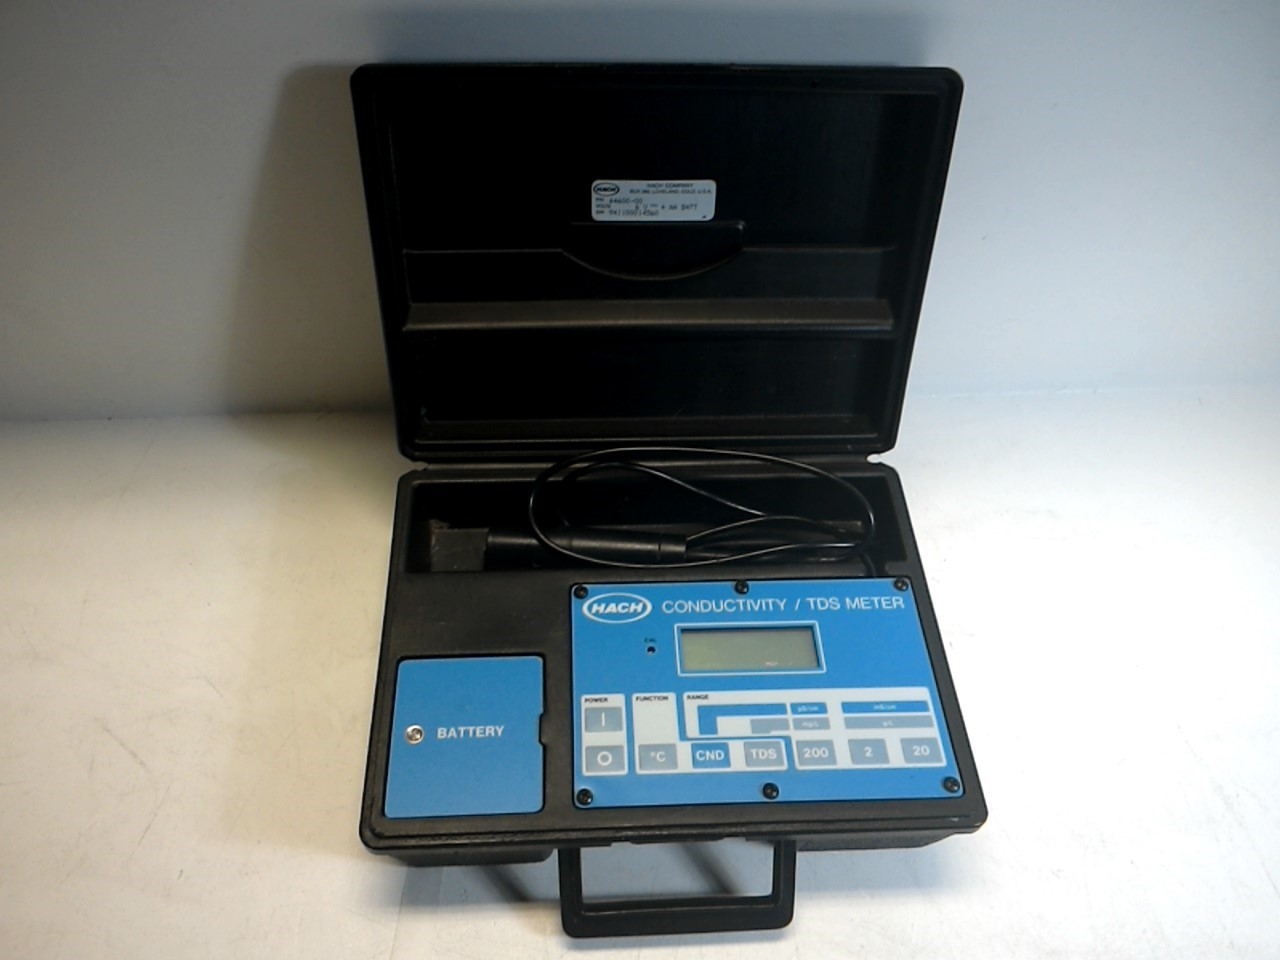 Parts Of Conductivity Meter : Hach model conductivity tds meter bad probe as is